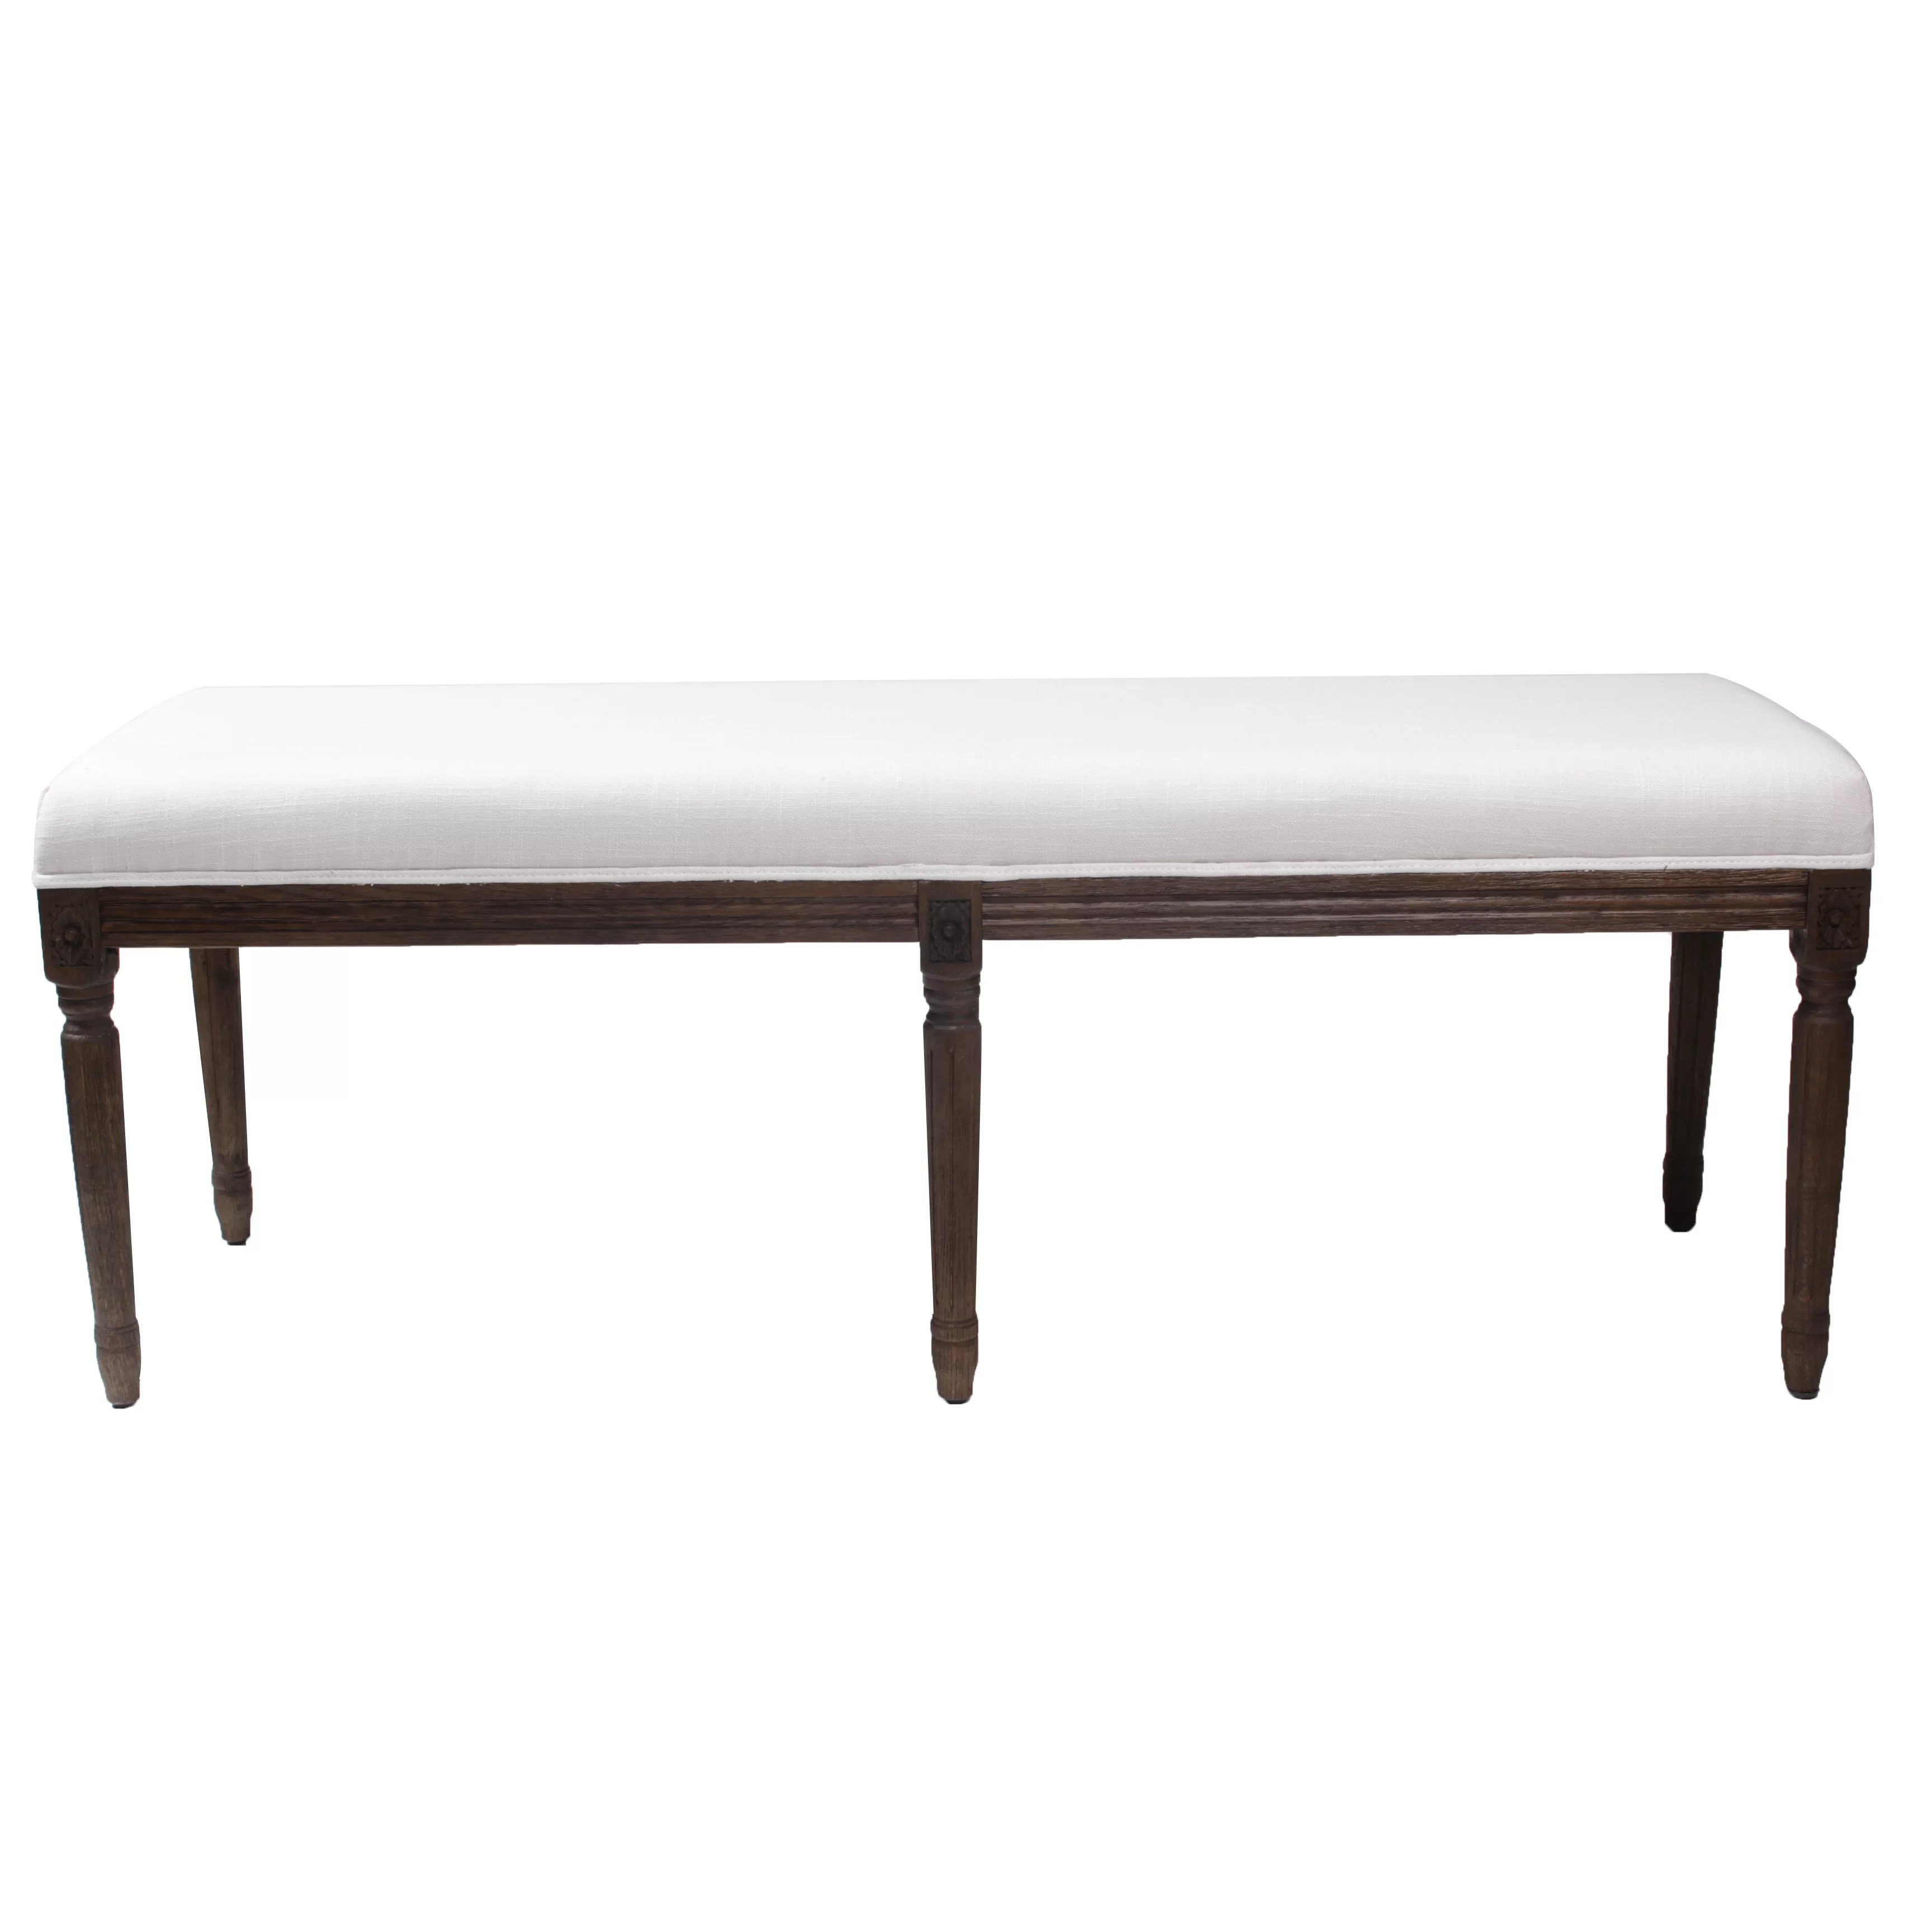 Bedroom Stools And Benches Blink Home Lafontaine Upholstered Bedroom Bench Wayfair